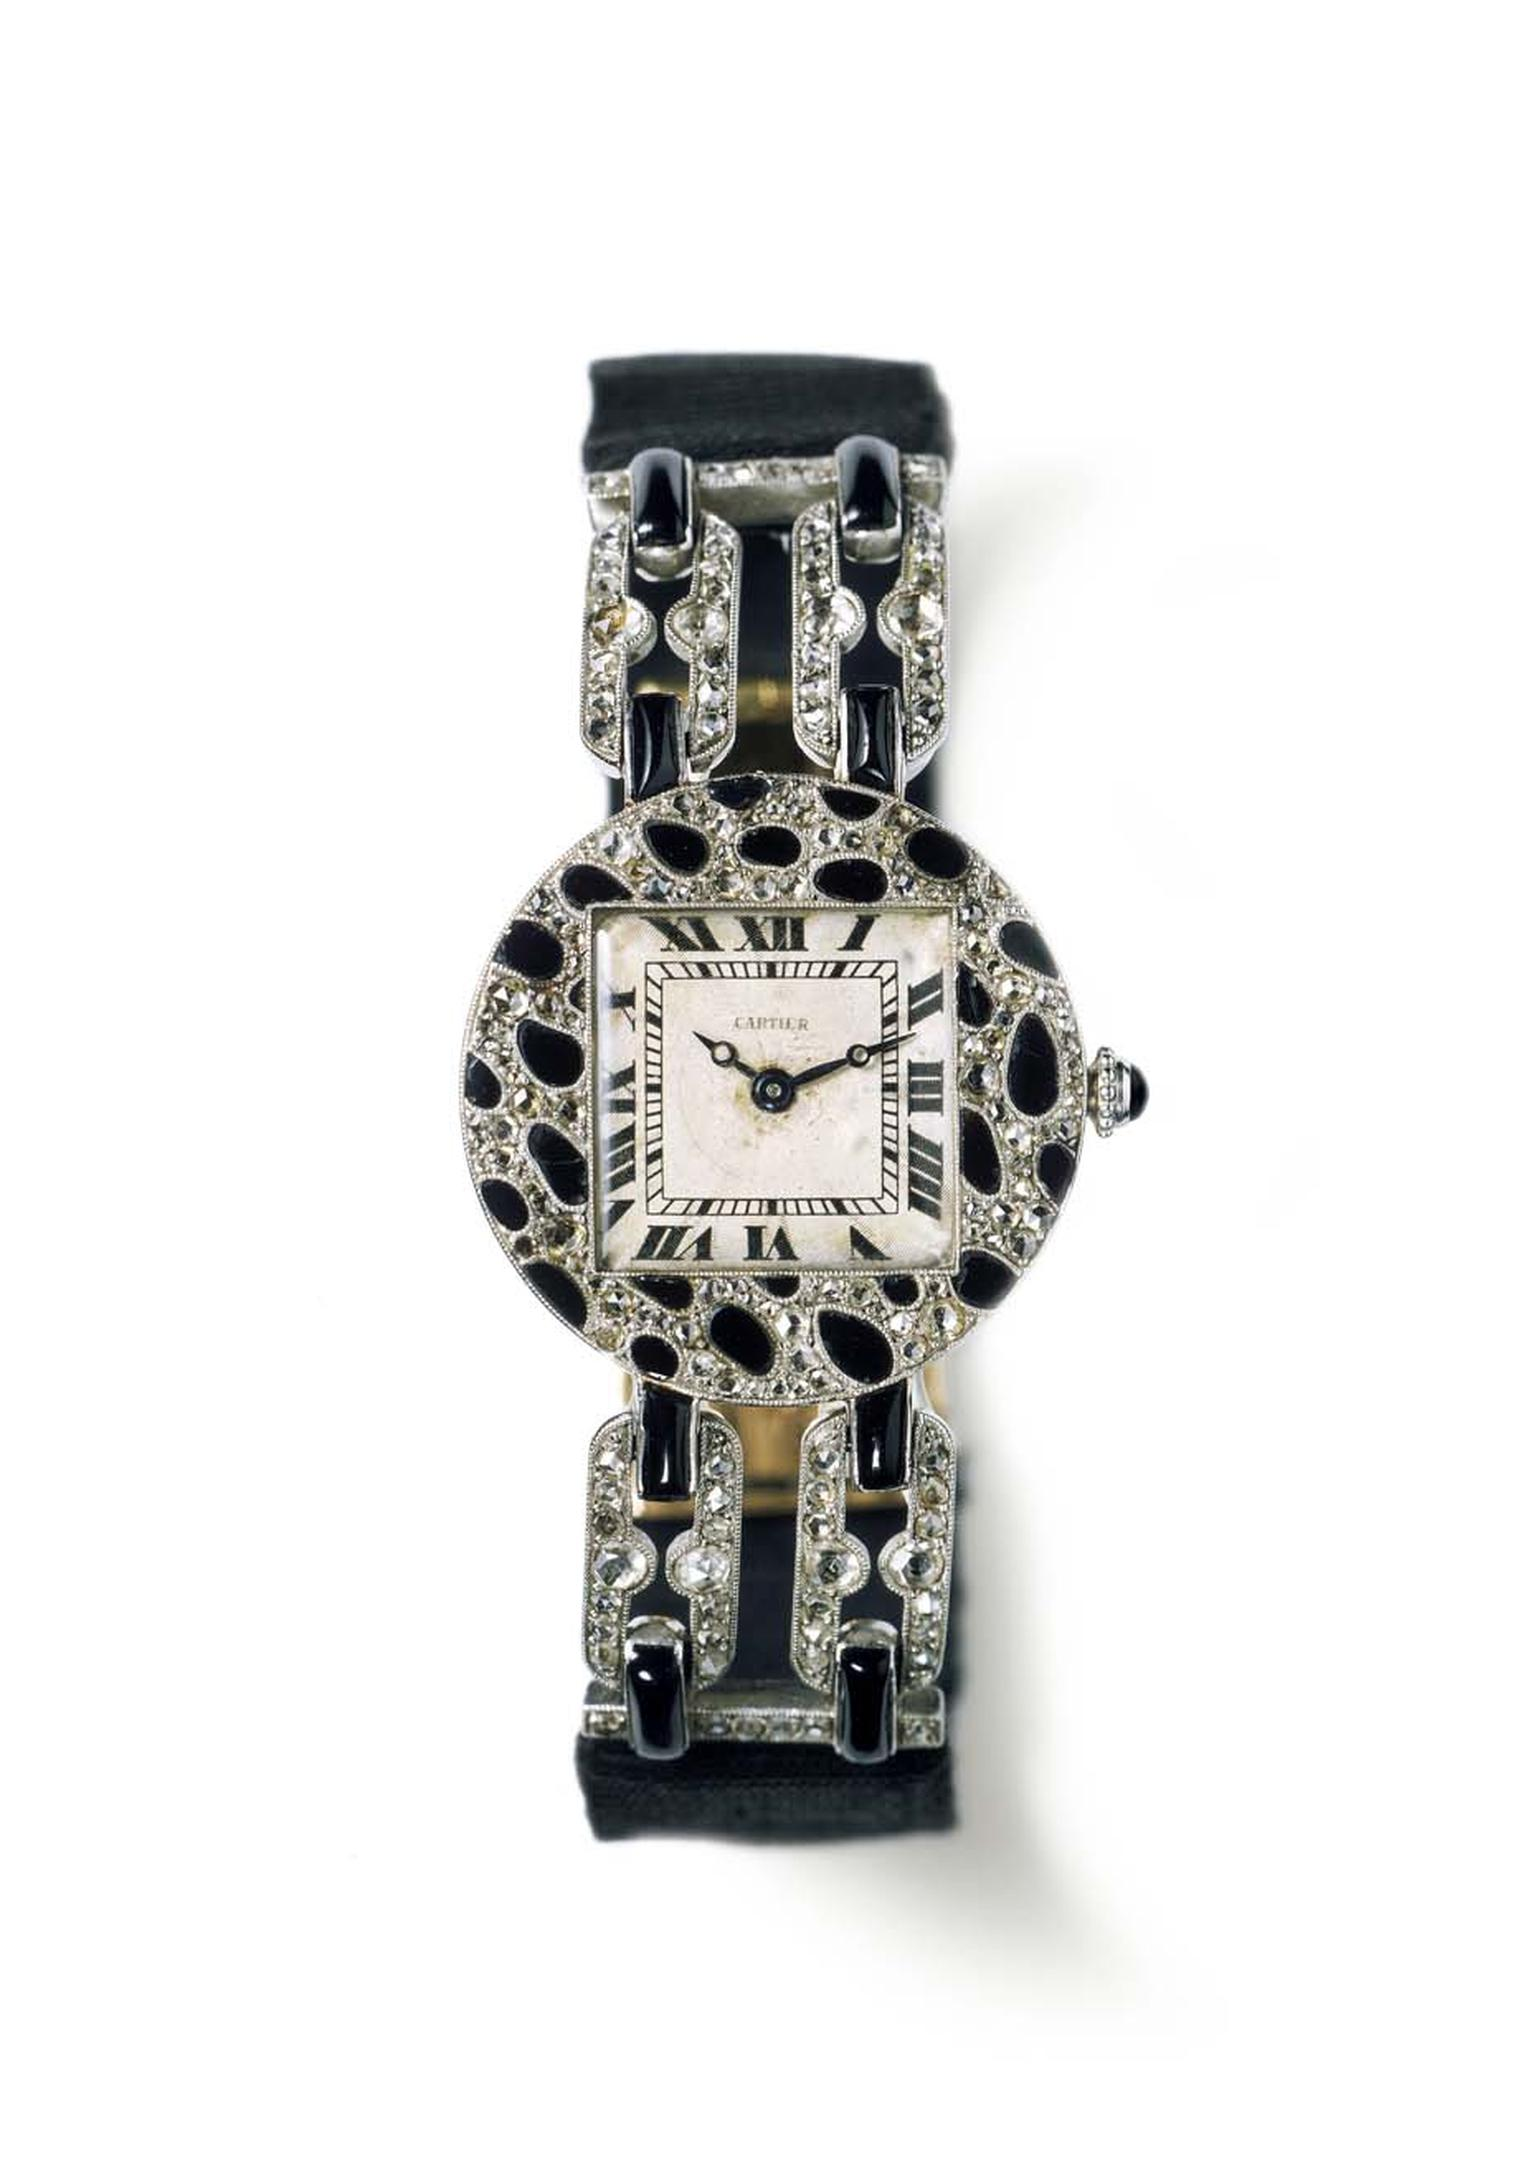 Cartier 1914 wristwatch with panther-spots motif features a round case in polished platinum, paved with rose-cut diamonds and onyx.